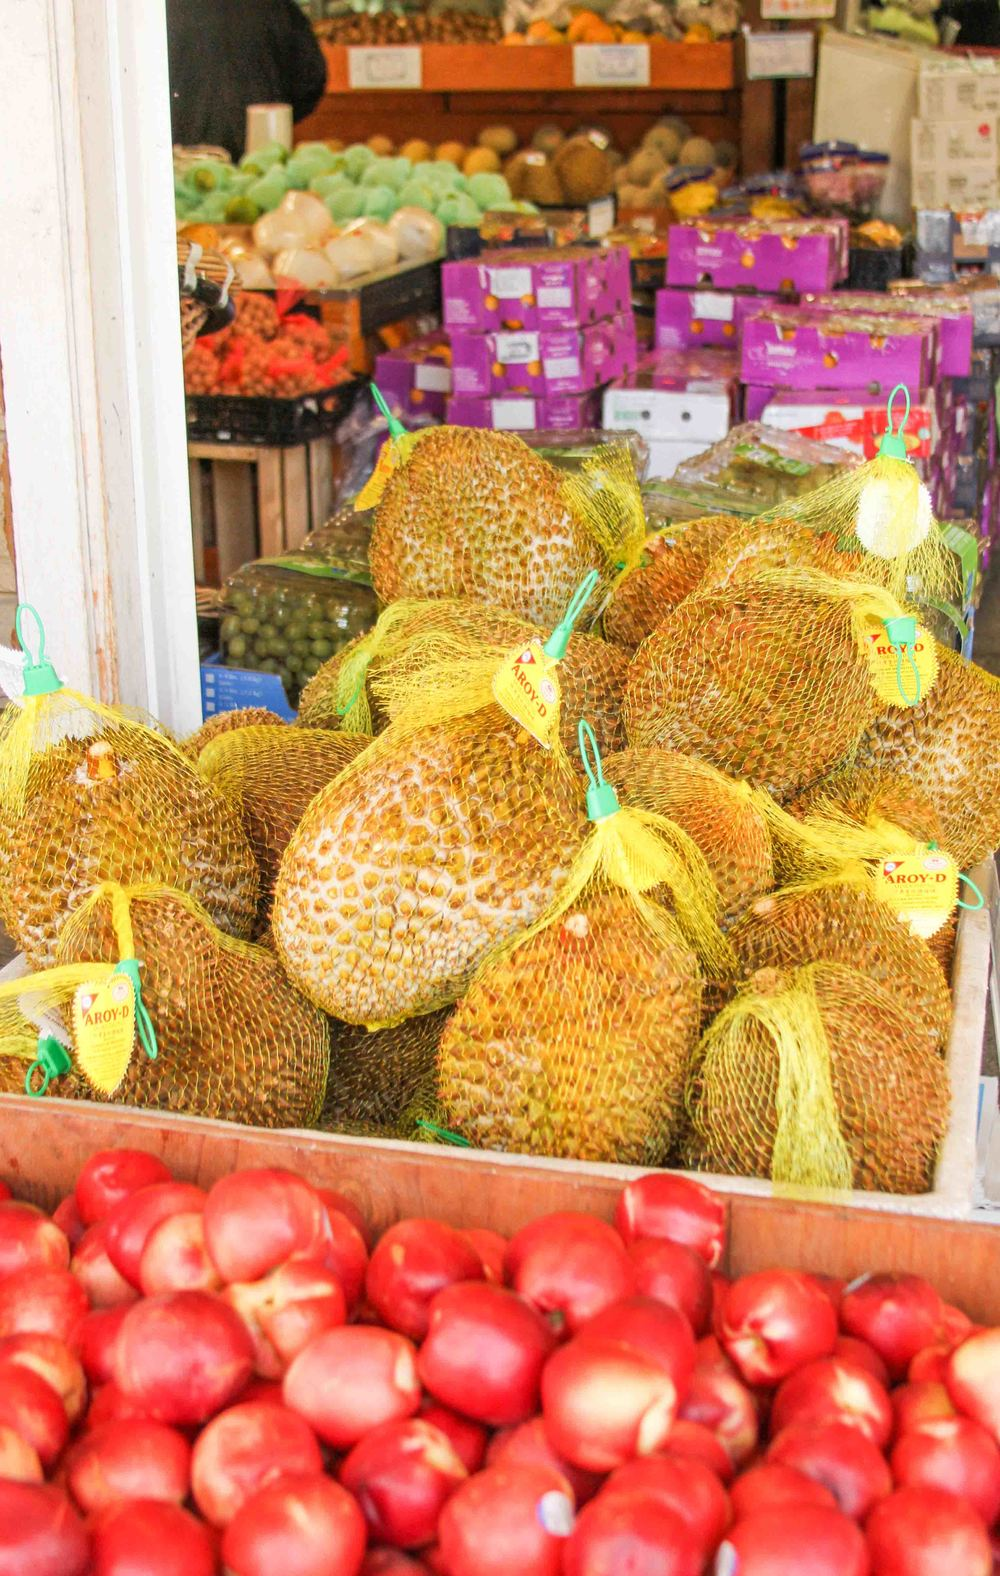 Since we were in the International District, we decided to peruse a Vietnamese grocery store. I recently tried Durian for the first time and loved it, so I was pleased to see this giant bin full of the stinky fruit.